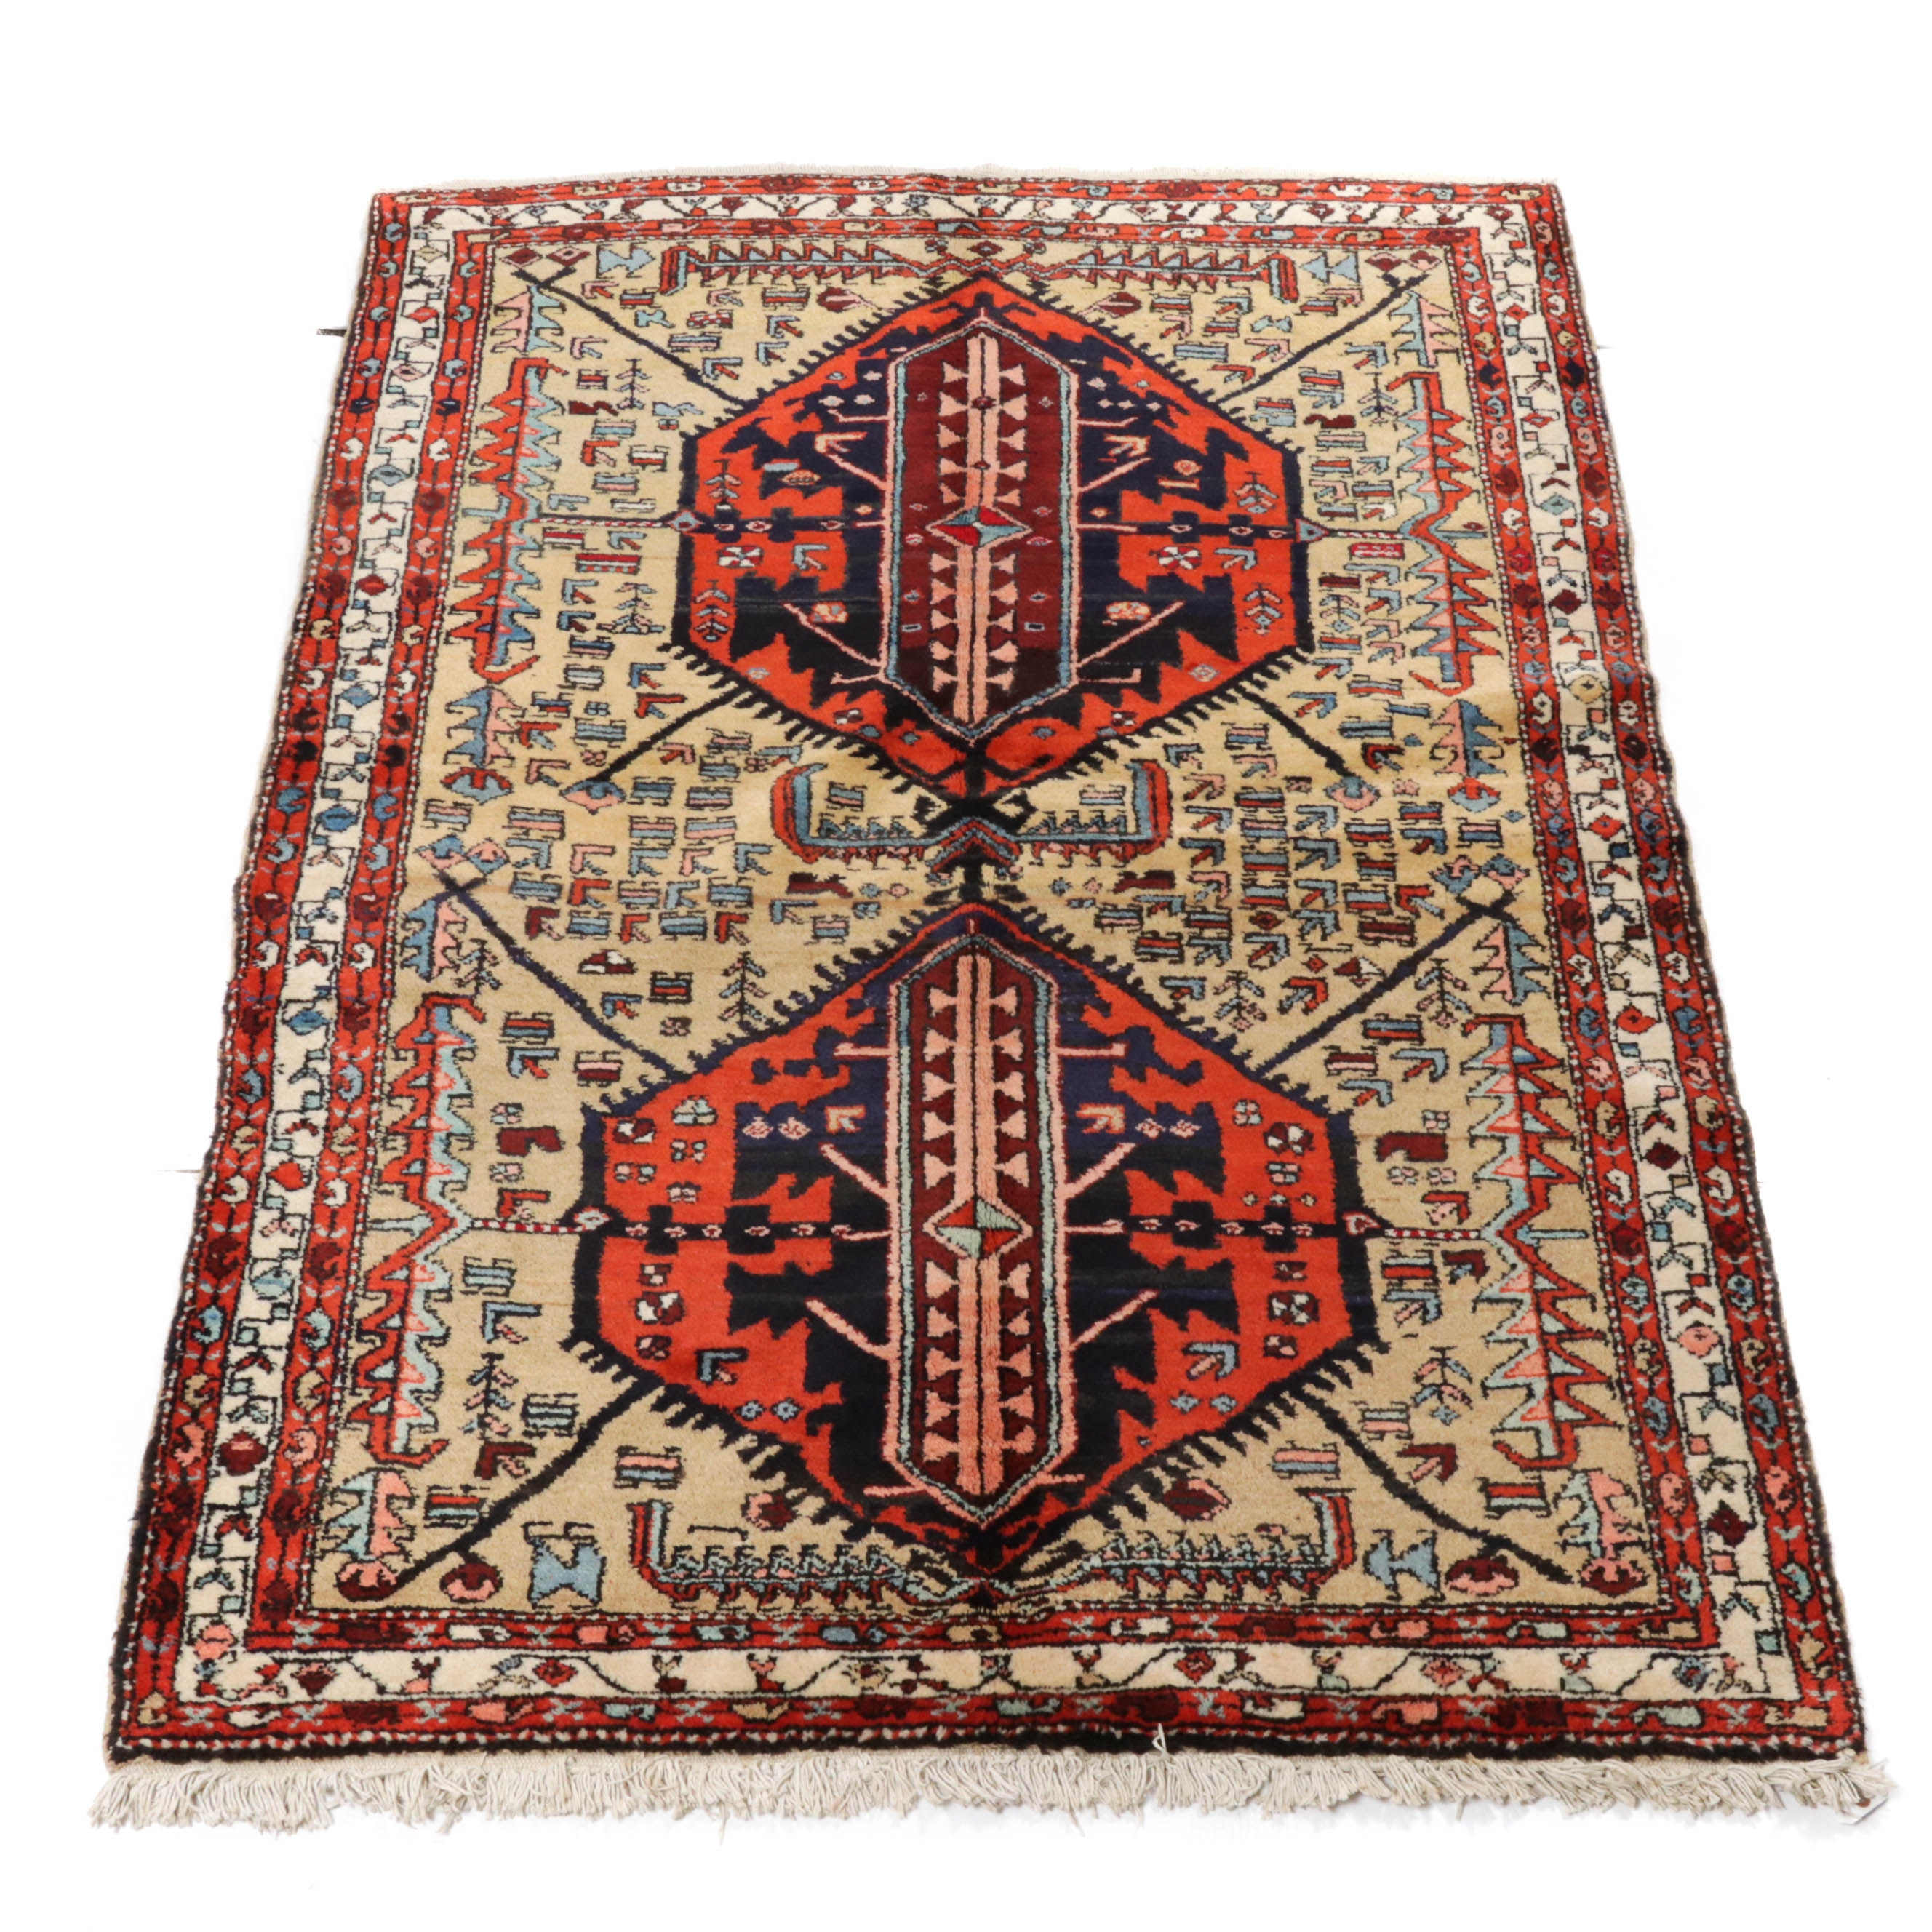 4.9' x 7' Hand-Knotted Persian Northwest Rug, Circa 1950s